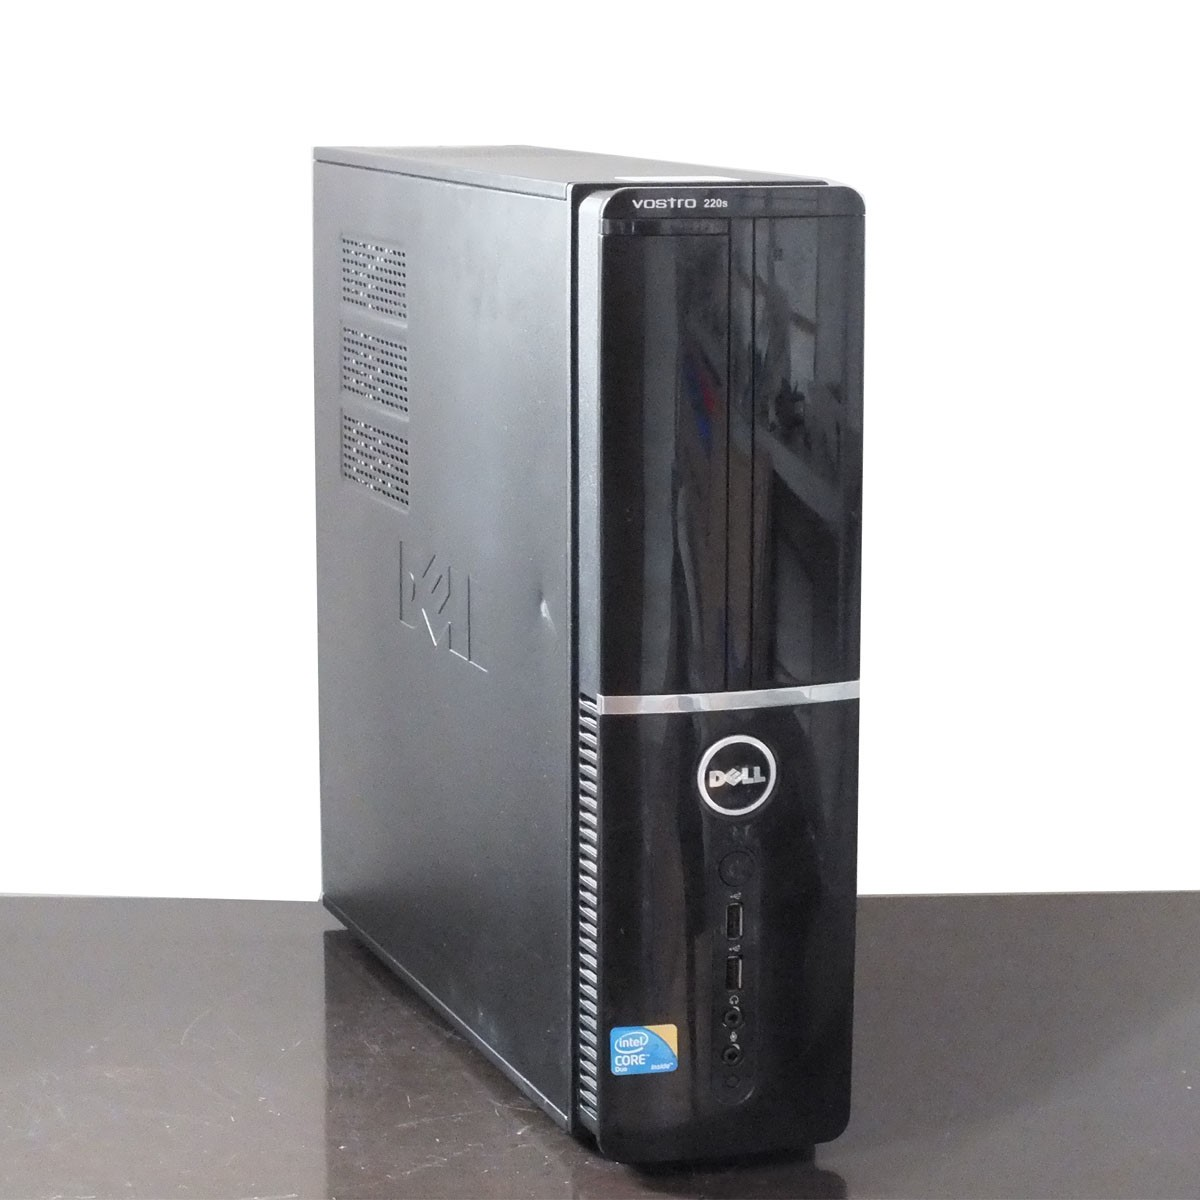 Computador Dell Vostro 220s - Core 2 Duo - 4gb ram - HD 250gb